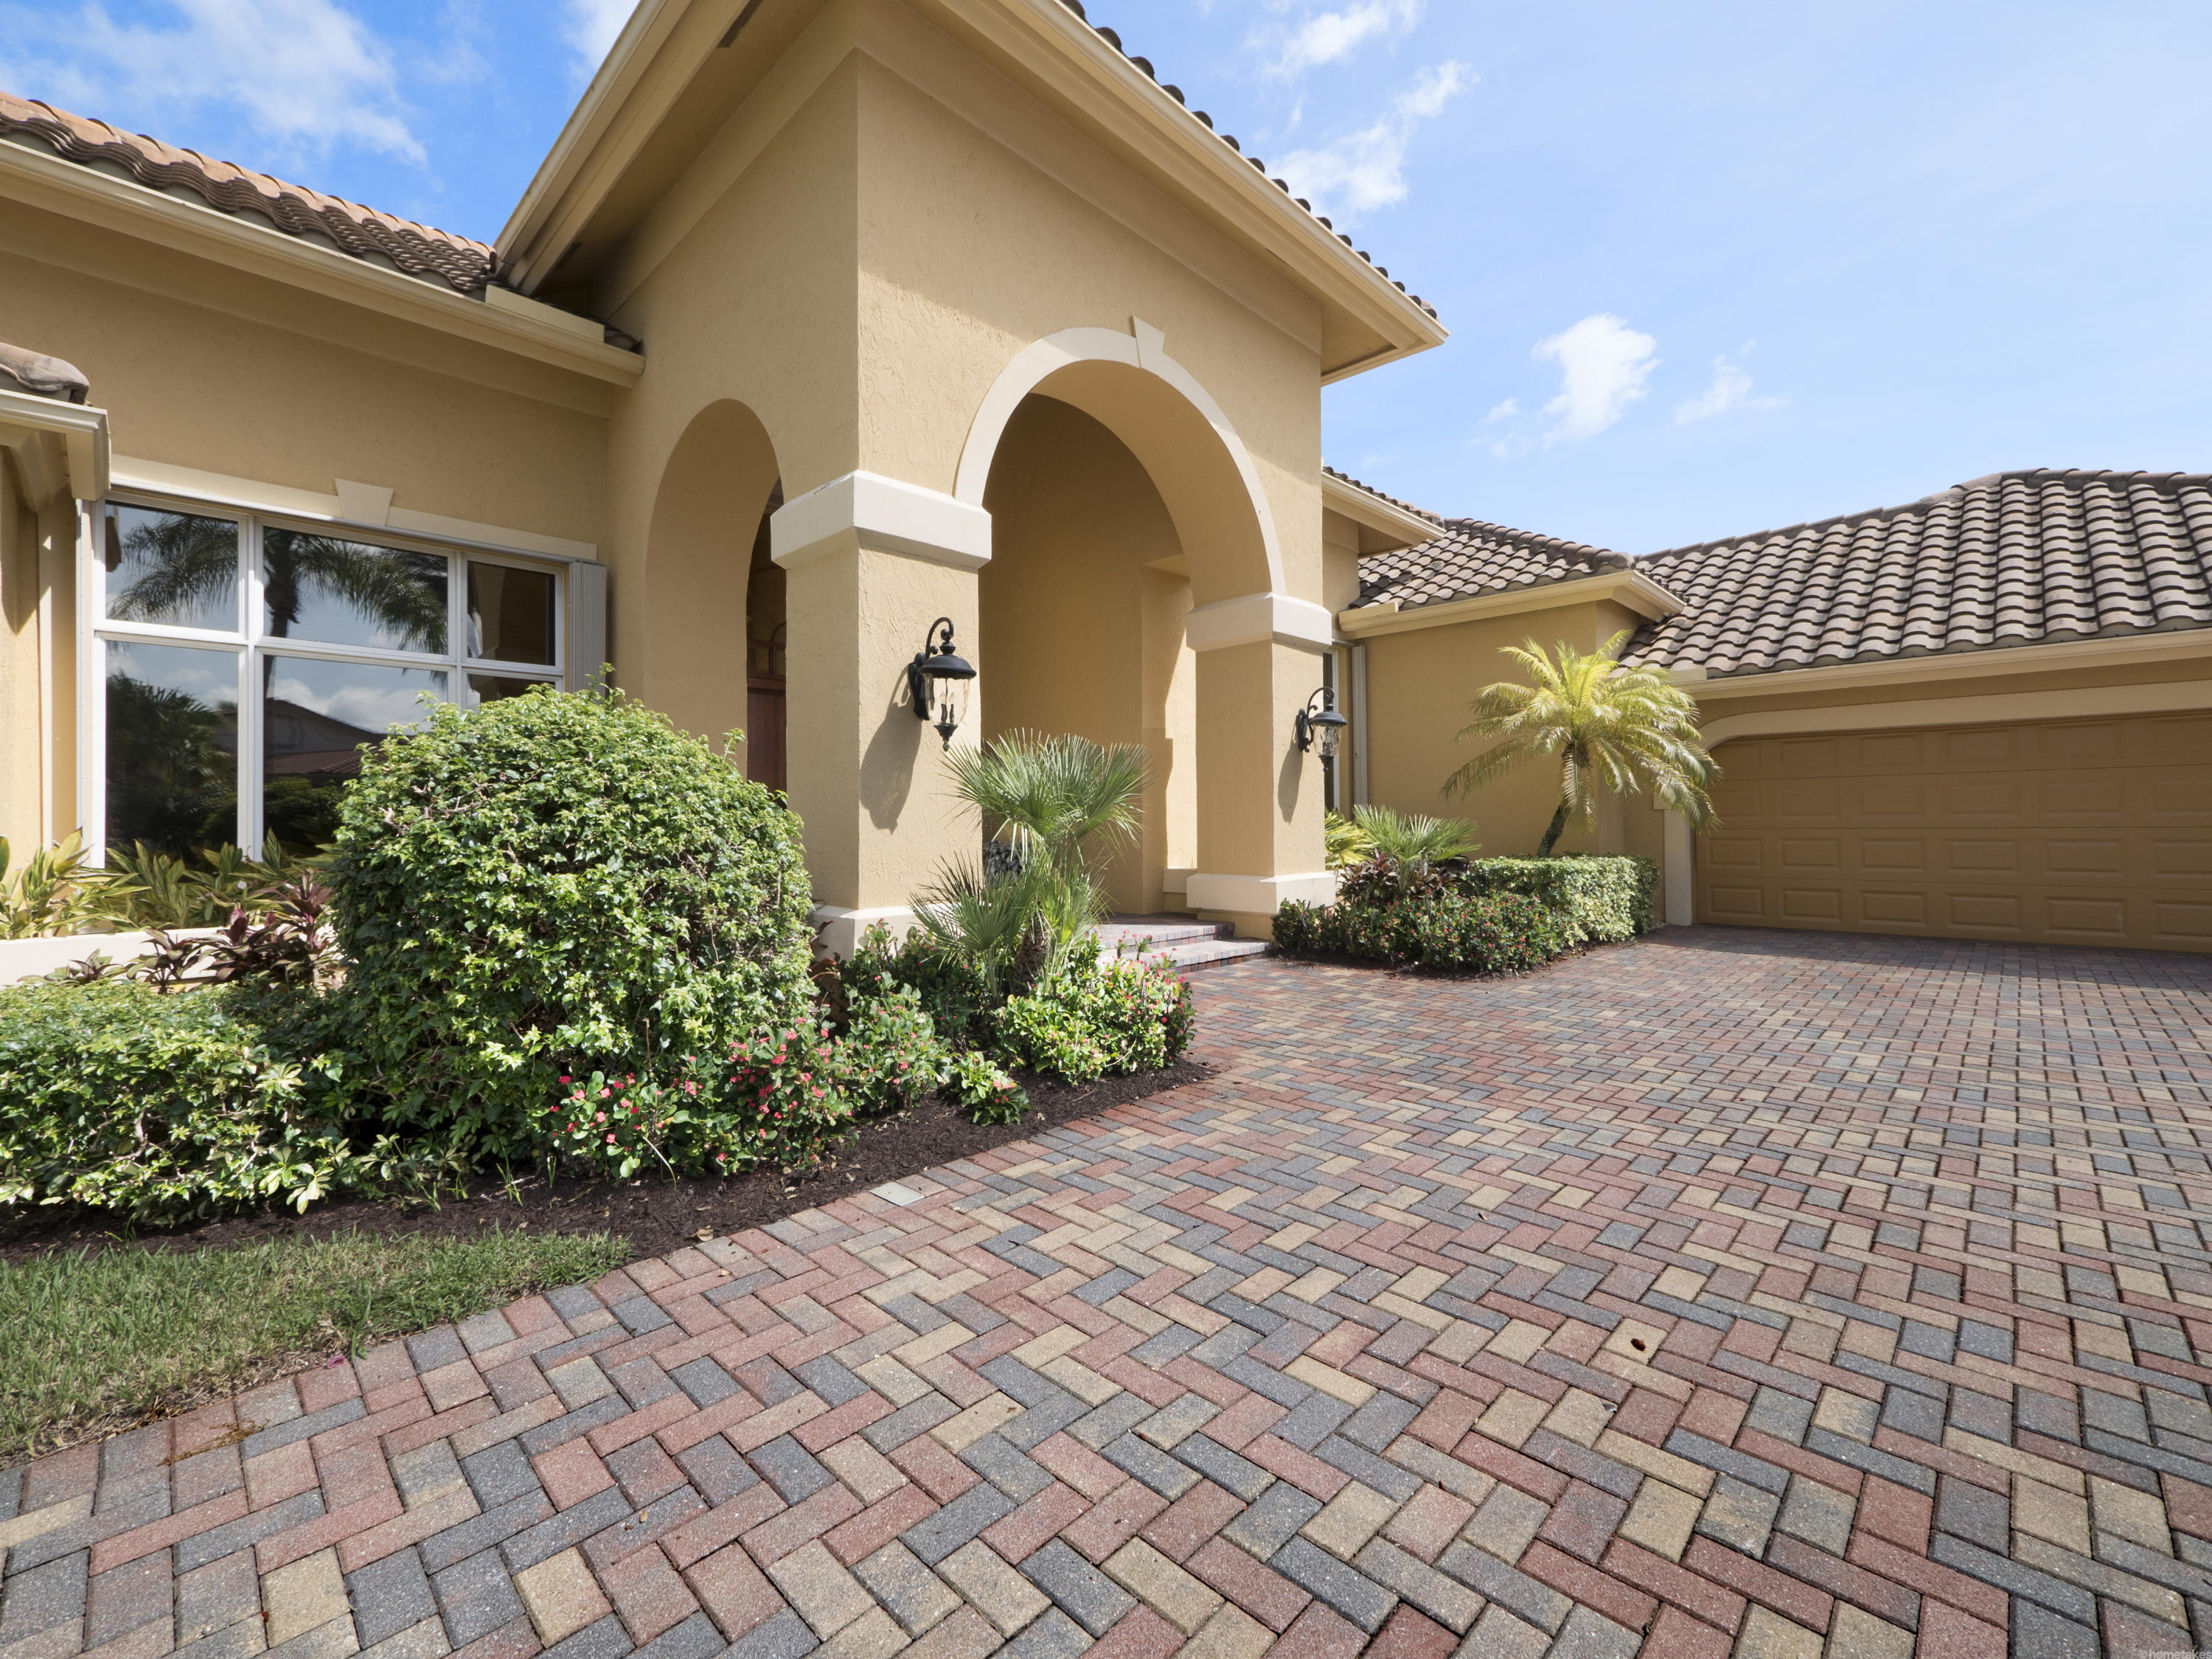 3081 Burgundy Drive, Palm Beach Gardens, Florida 33410, 5 Bedrooms Bedrooms, ,6.1 BathroomsBathrooms,A,Single family,Burgundy,RX-10499590